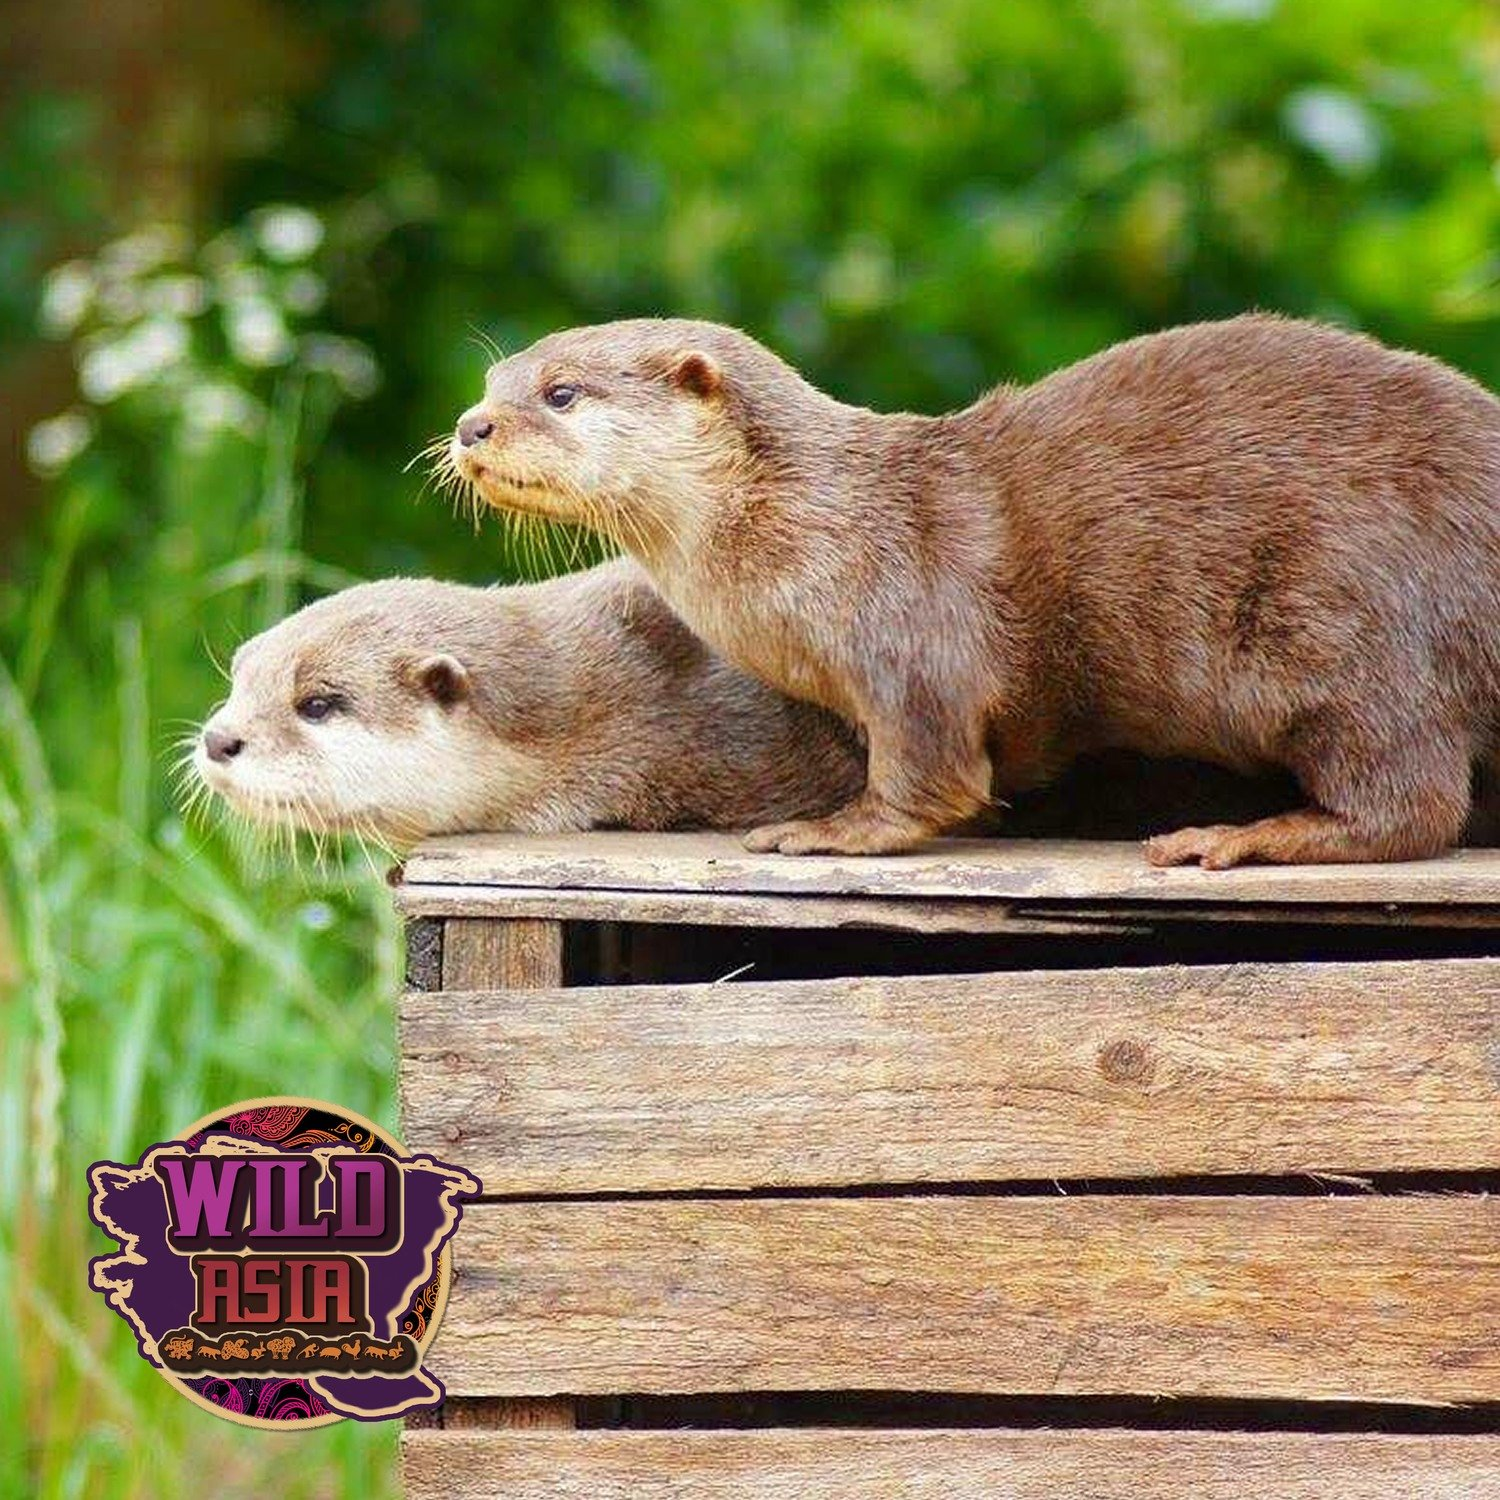 Karn and widget the OTTERS